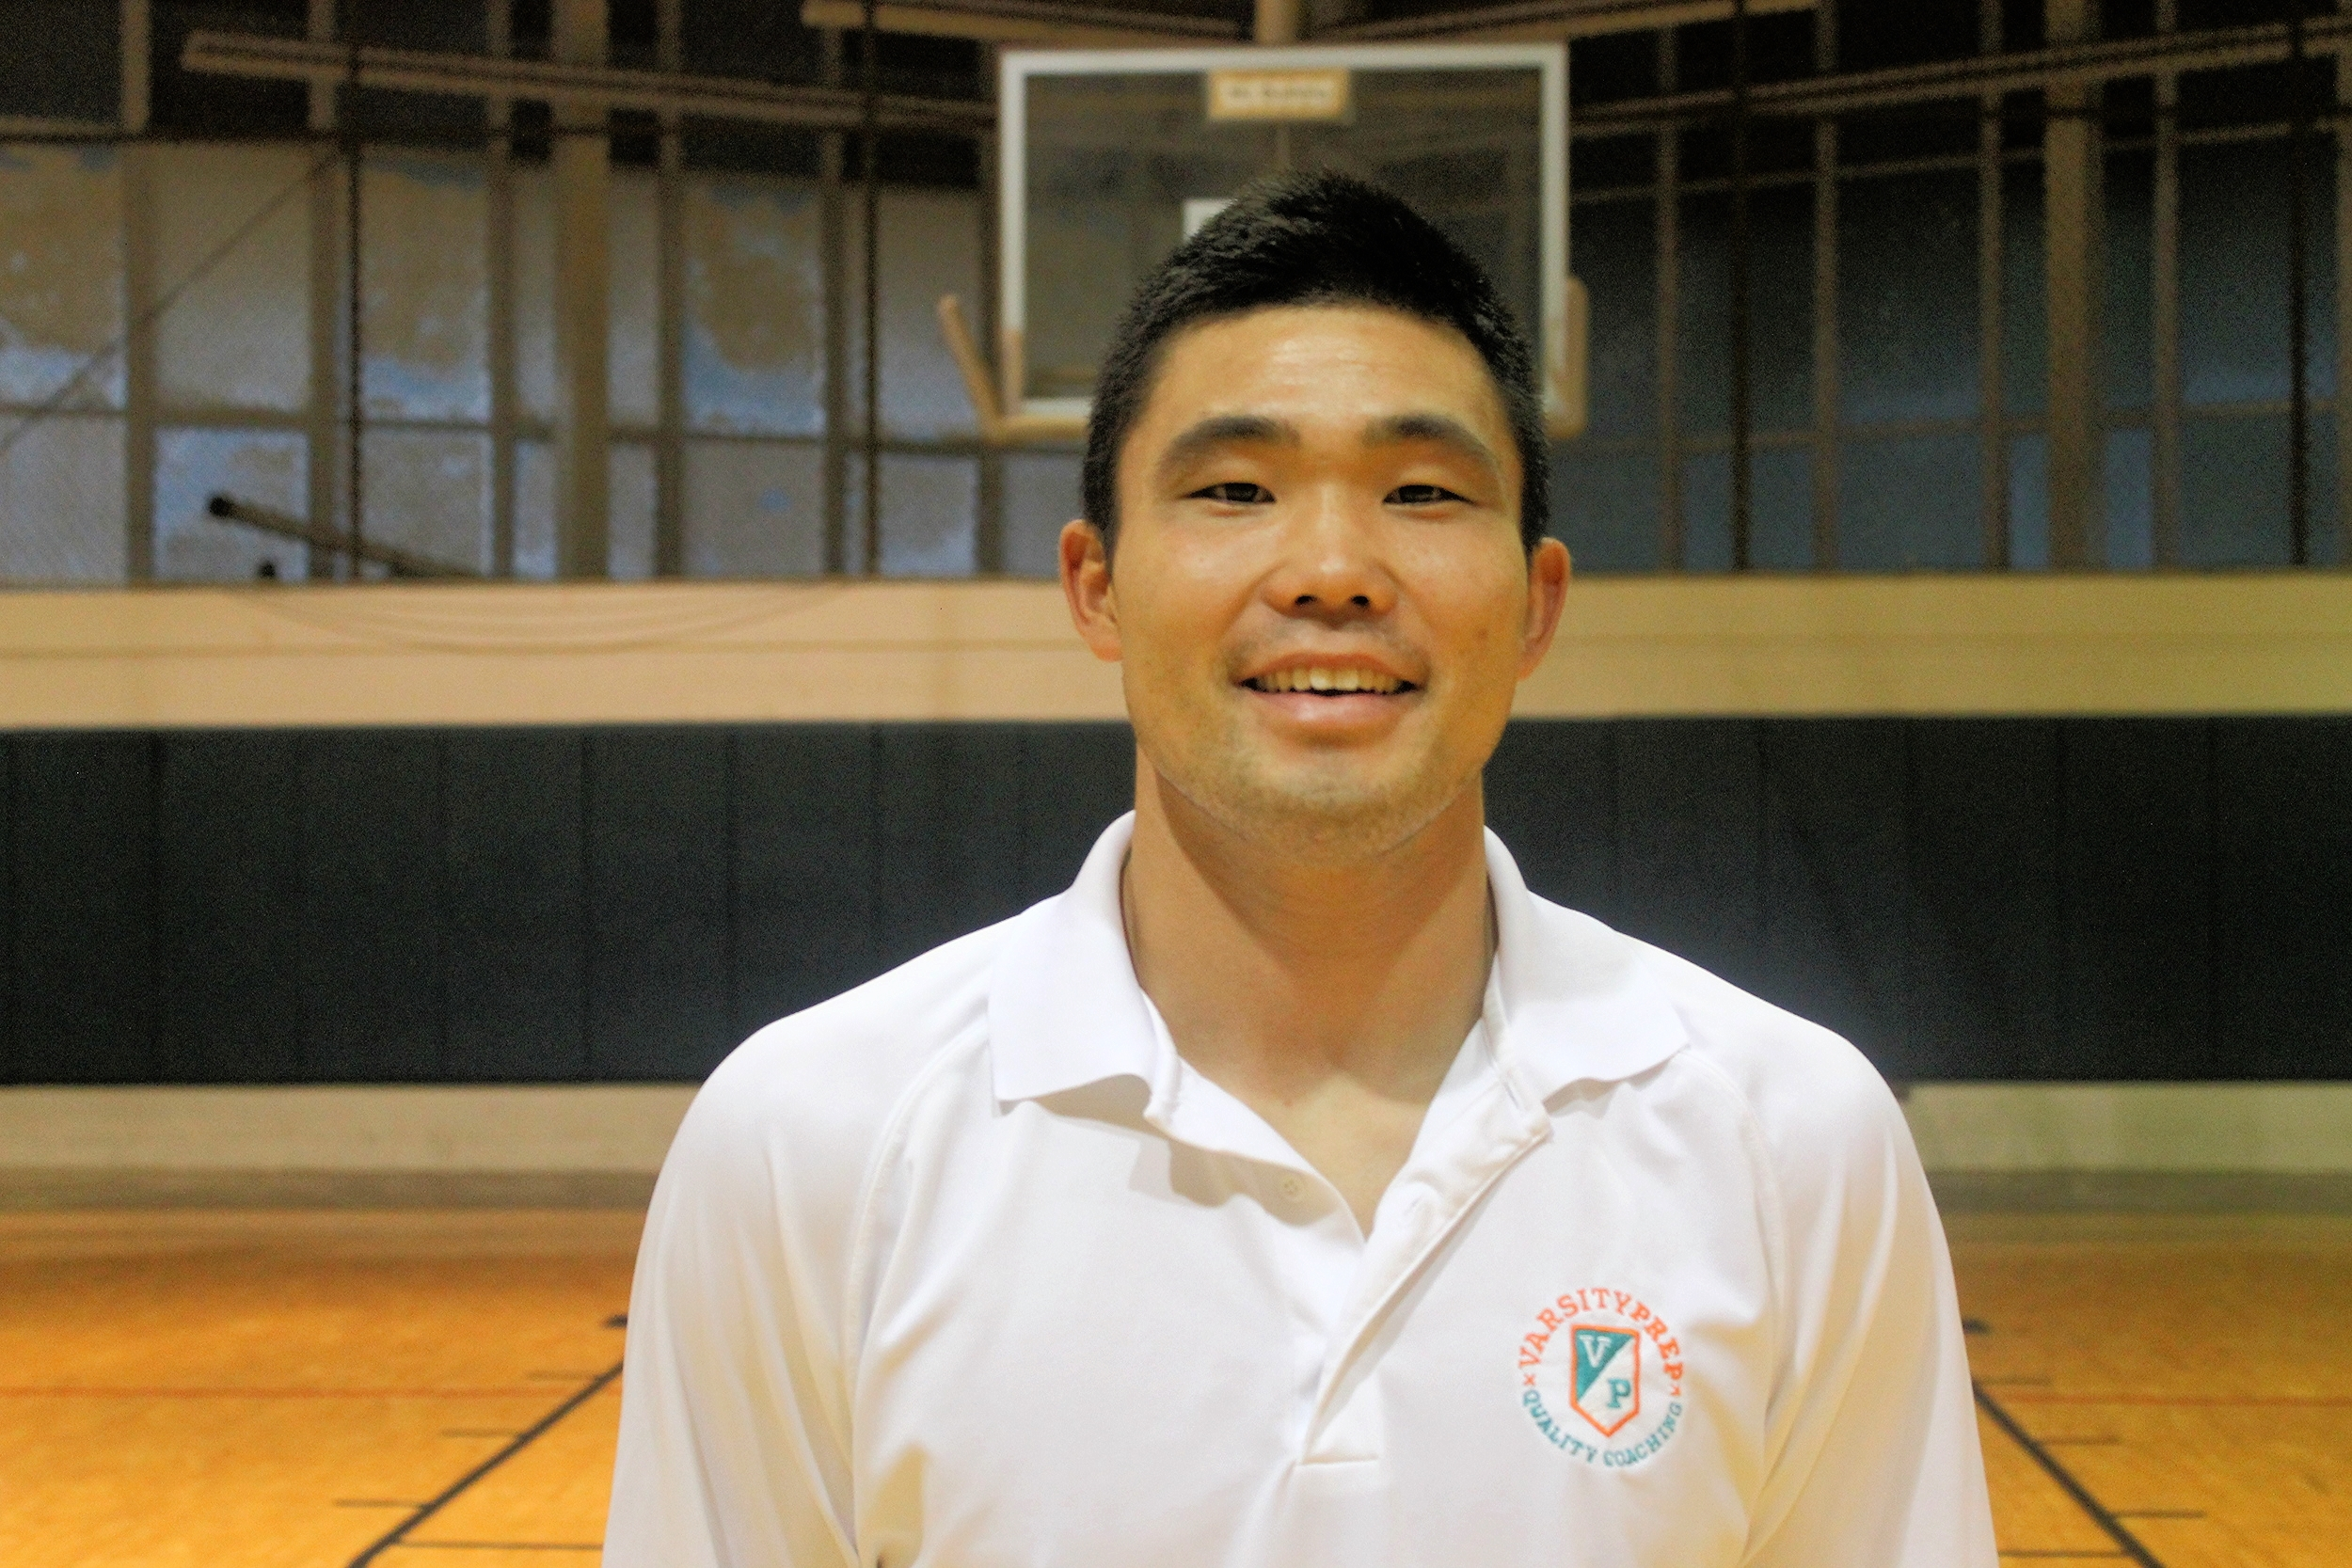 Position: Setter, libero  High School: Kalani High School (Class of '11)  College: University of Hawaii at Manoa   Sports Bio:   - Played volleyball for 8 years  - Played for Kuikahi Volleyball Club (2011)  - Helped coach Kalani Volleyball (2012-2014)   Personal Bio:   - From Honolulu, Hawaii  - Studying Kinesiology at the University of Hawaii at Manoa  - Passionate about sports  - Want to further my teaching by helping out the community's youth